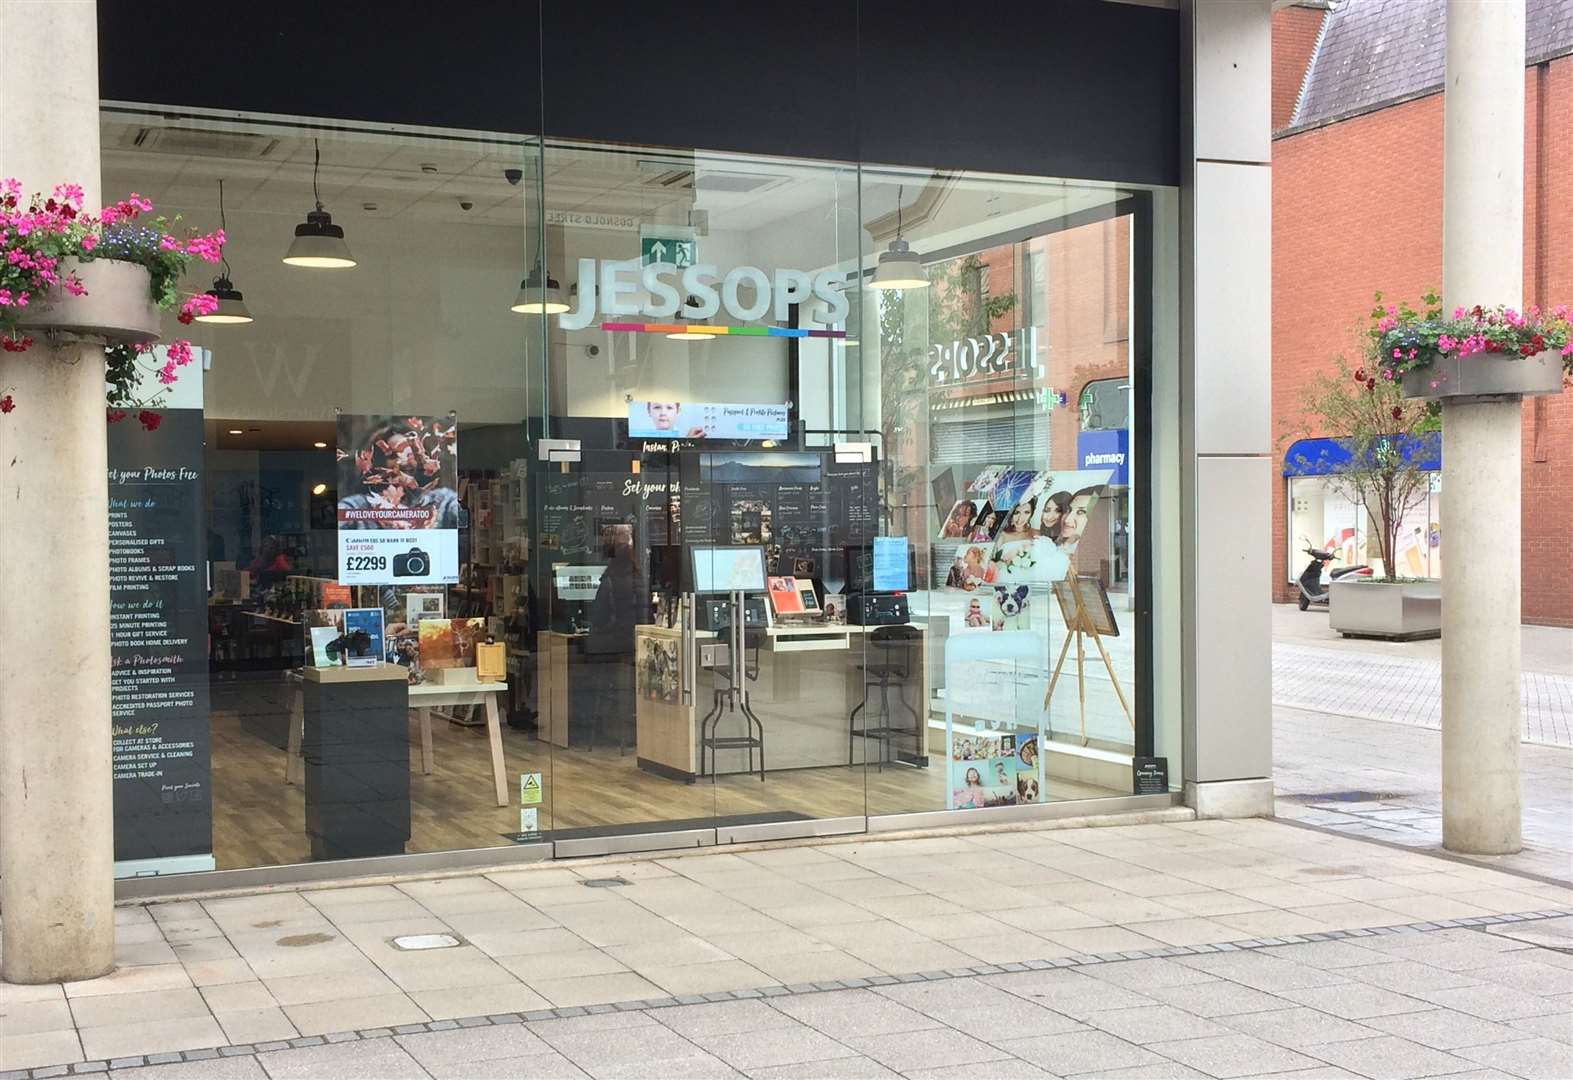 Bury St Edmunds store could be in danger as Jessops plans to call in administrators